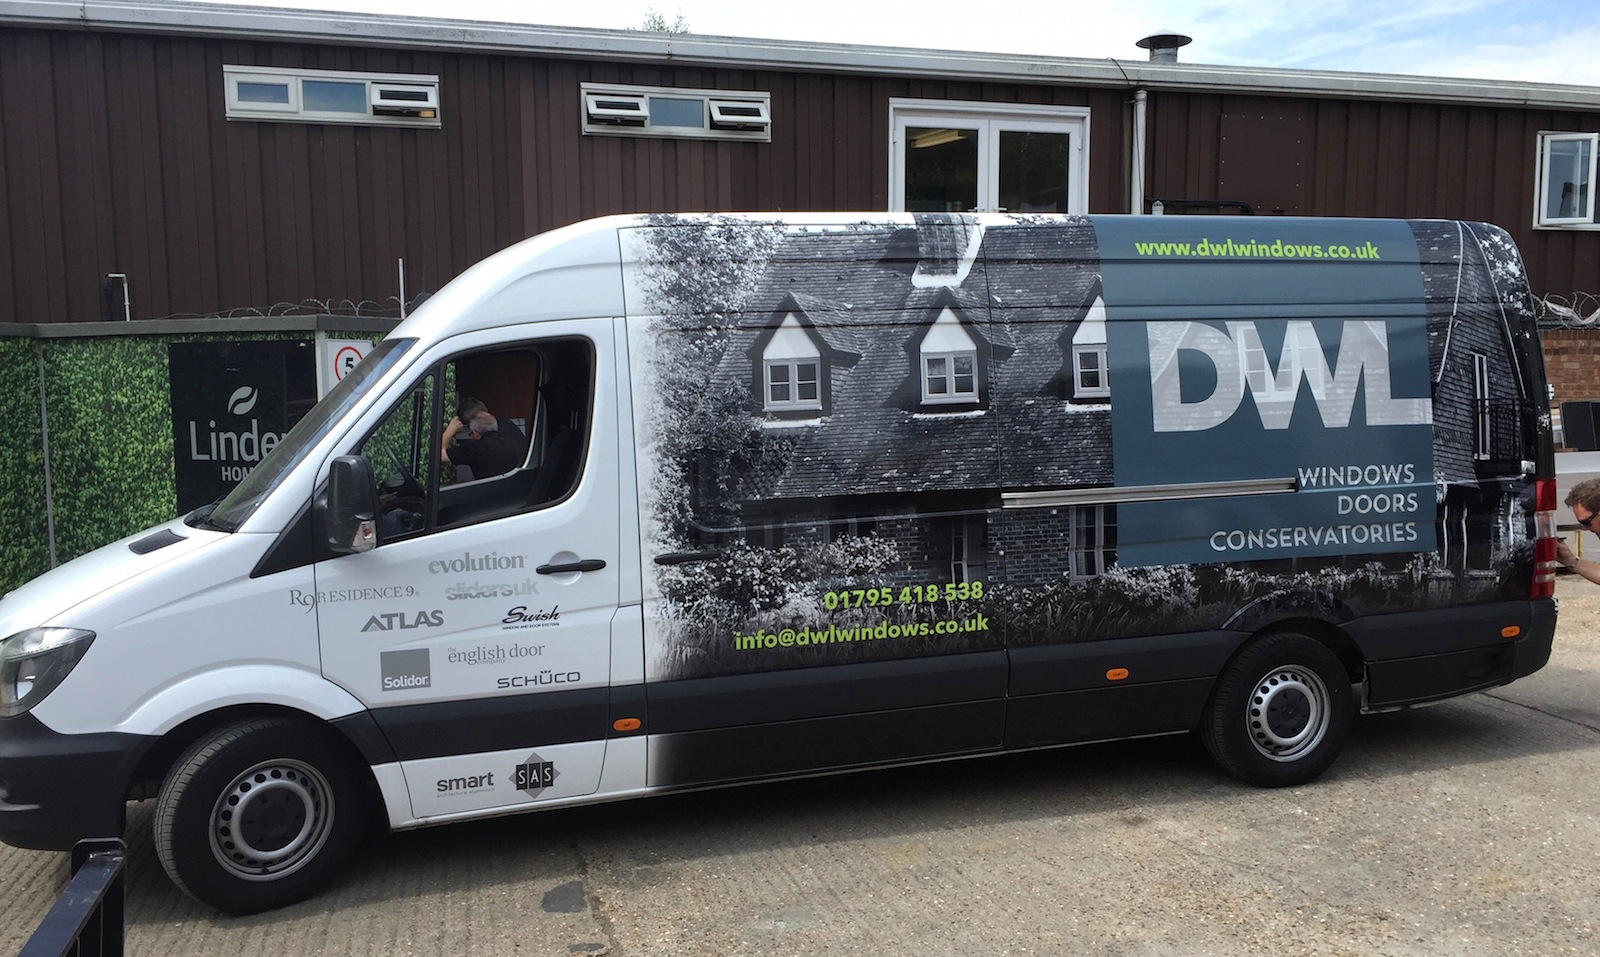 Our new van wraps dwl windows doors conservatories for Window and door company